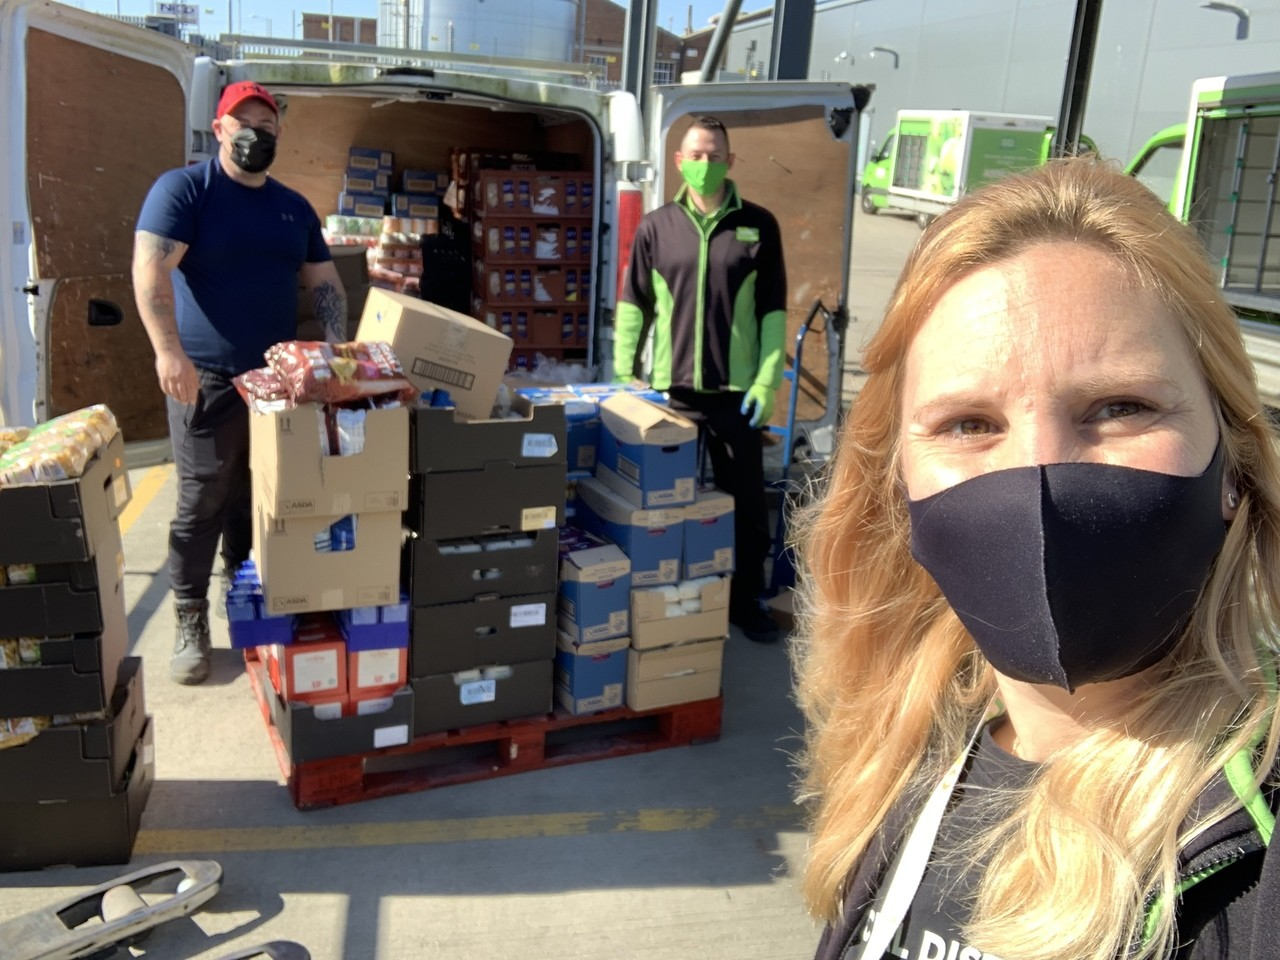 100 food parcels from Jaywick Sands Community Forum | Asda Clacton-on-Sea